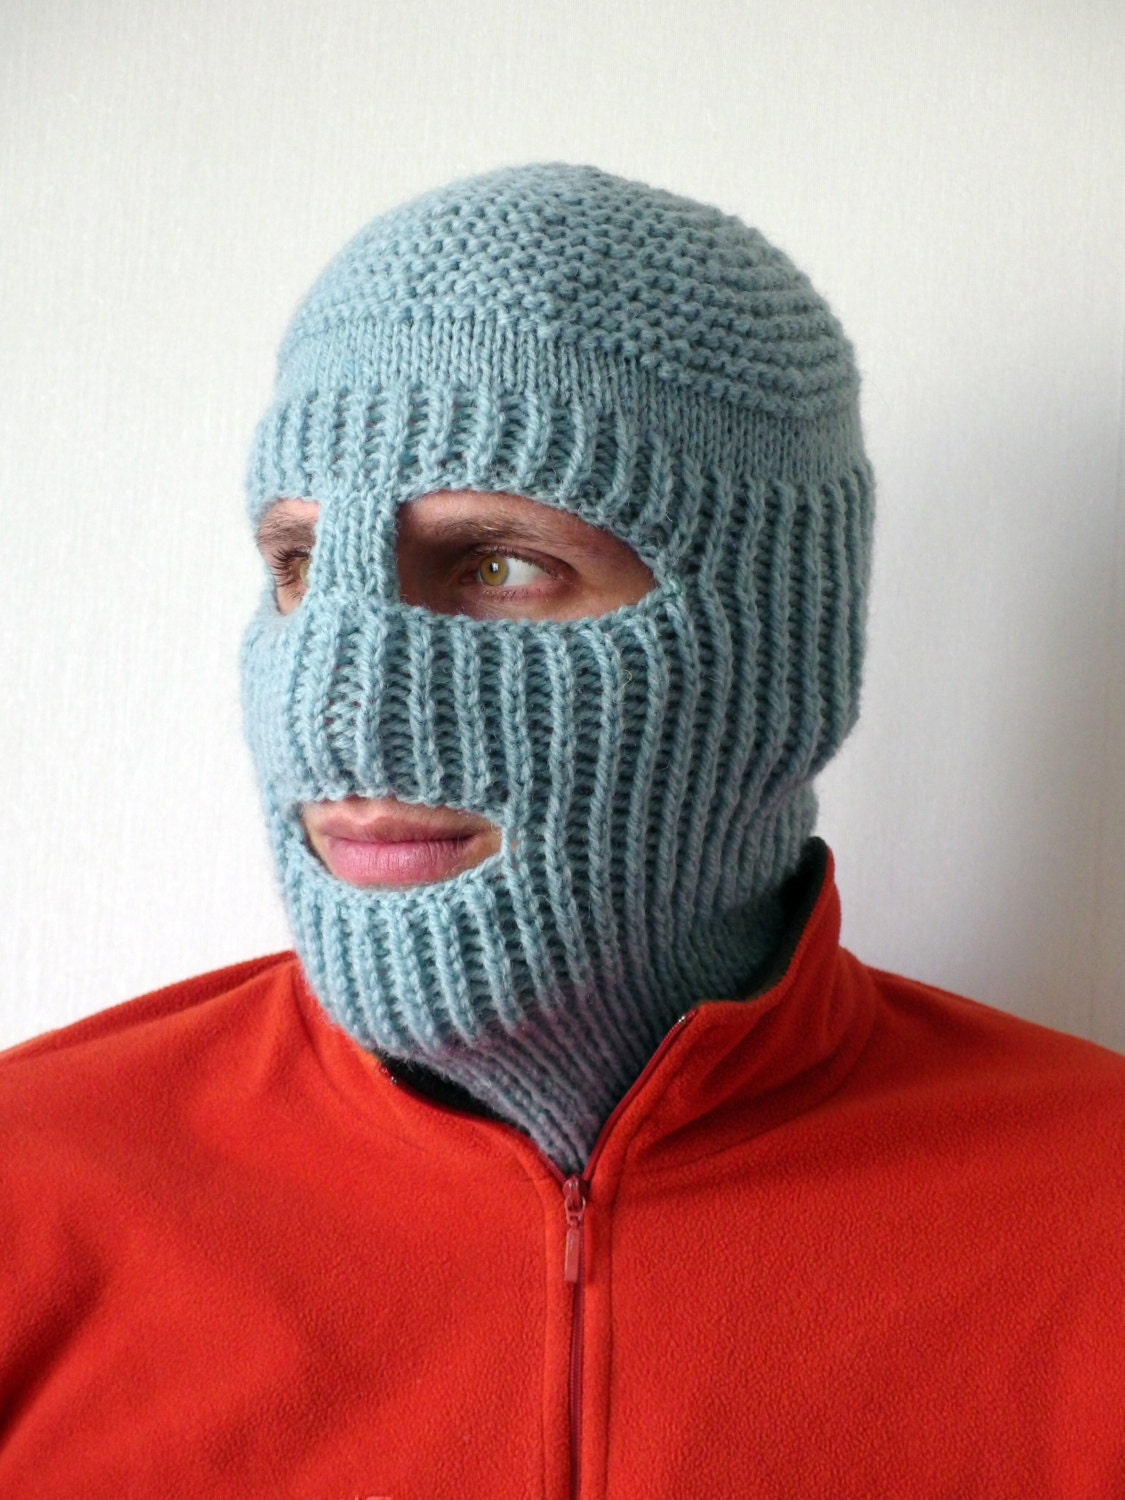 Knit Ski Mask Hat Balaclava Full Face Ski Mask Winter Sports